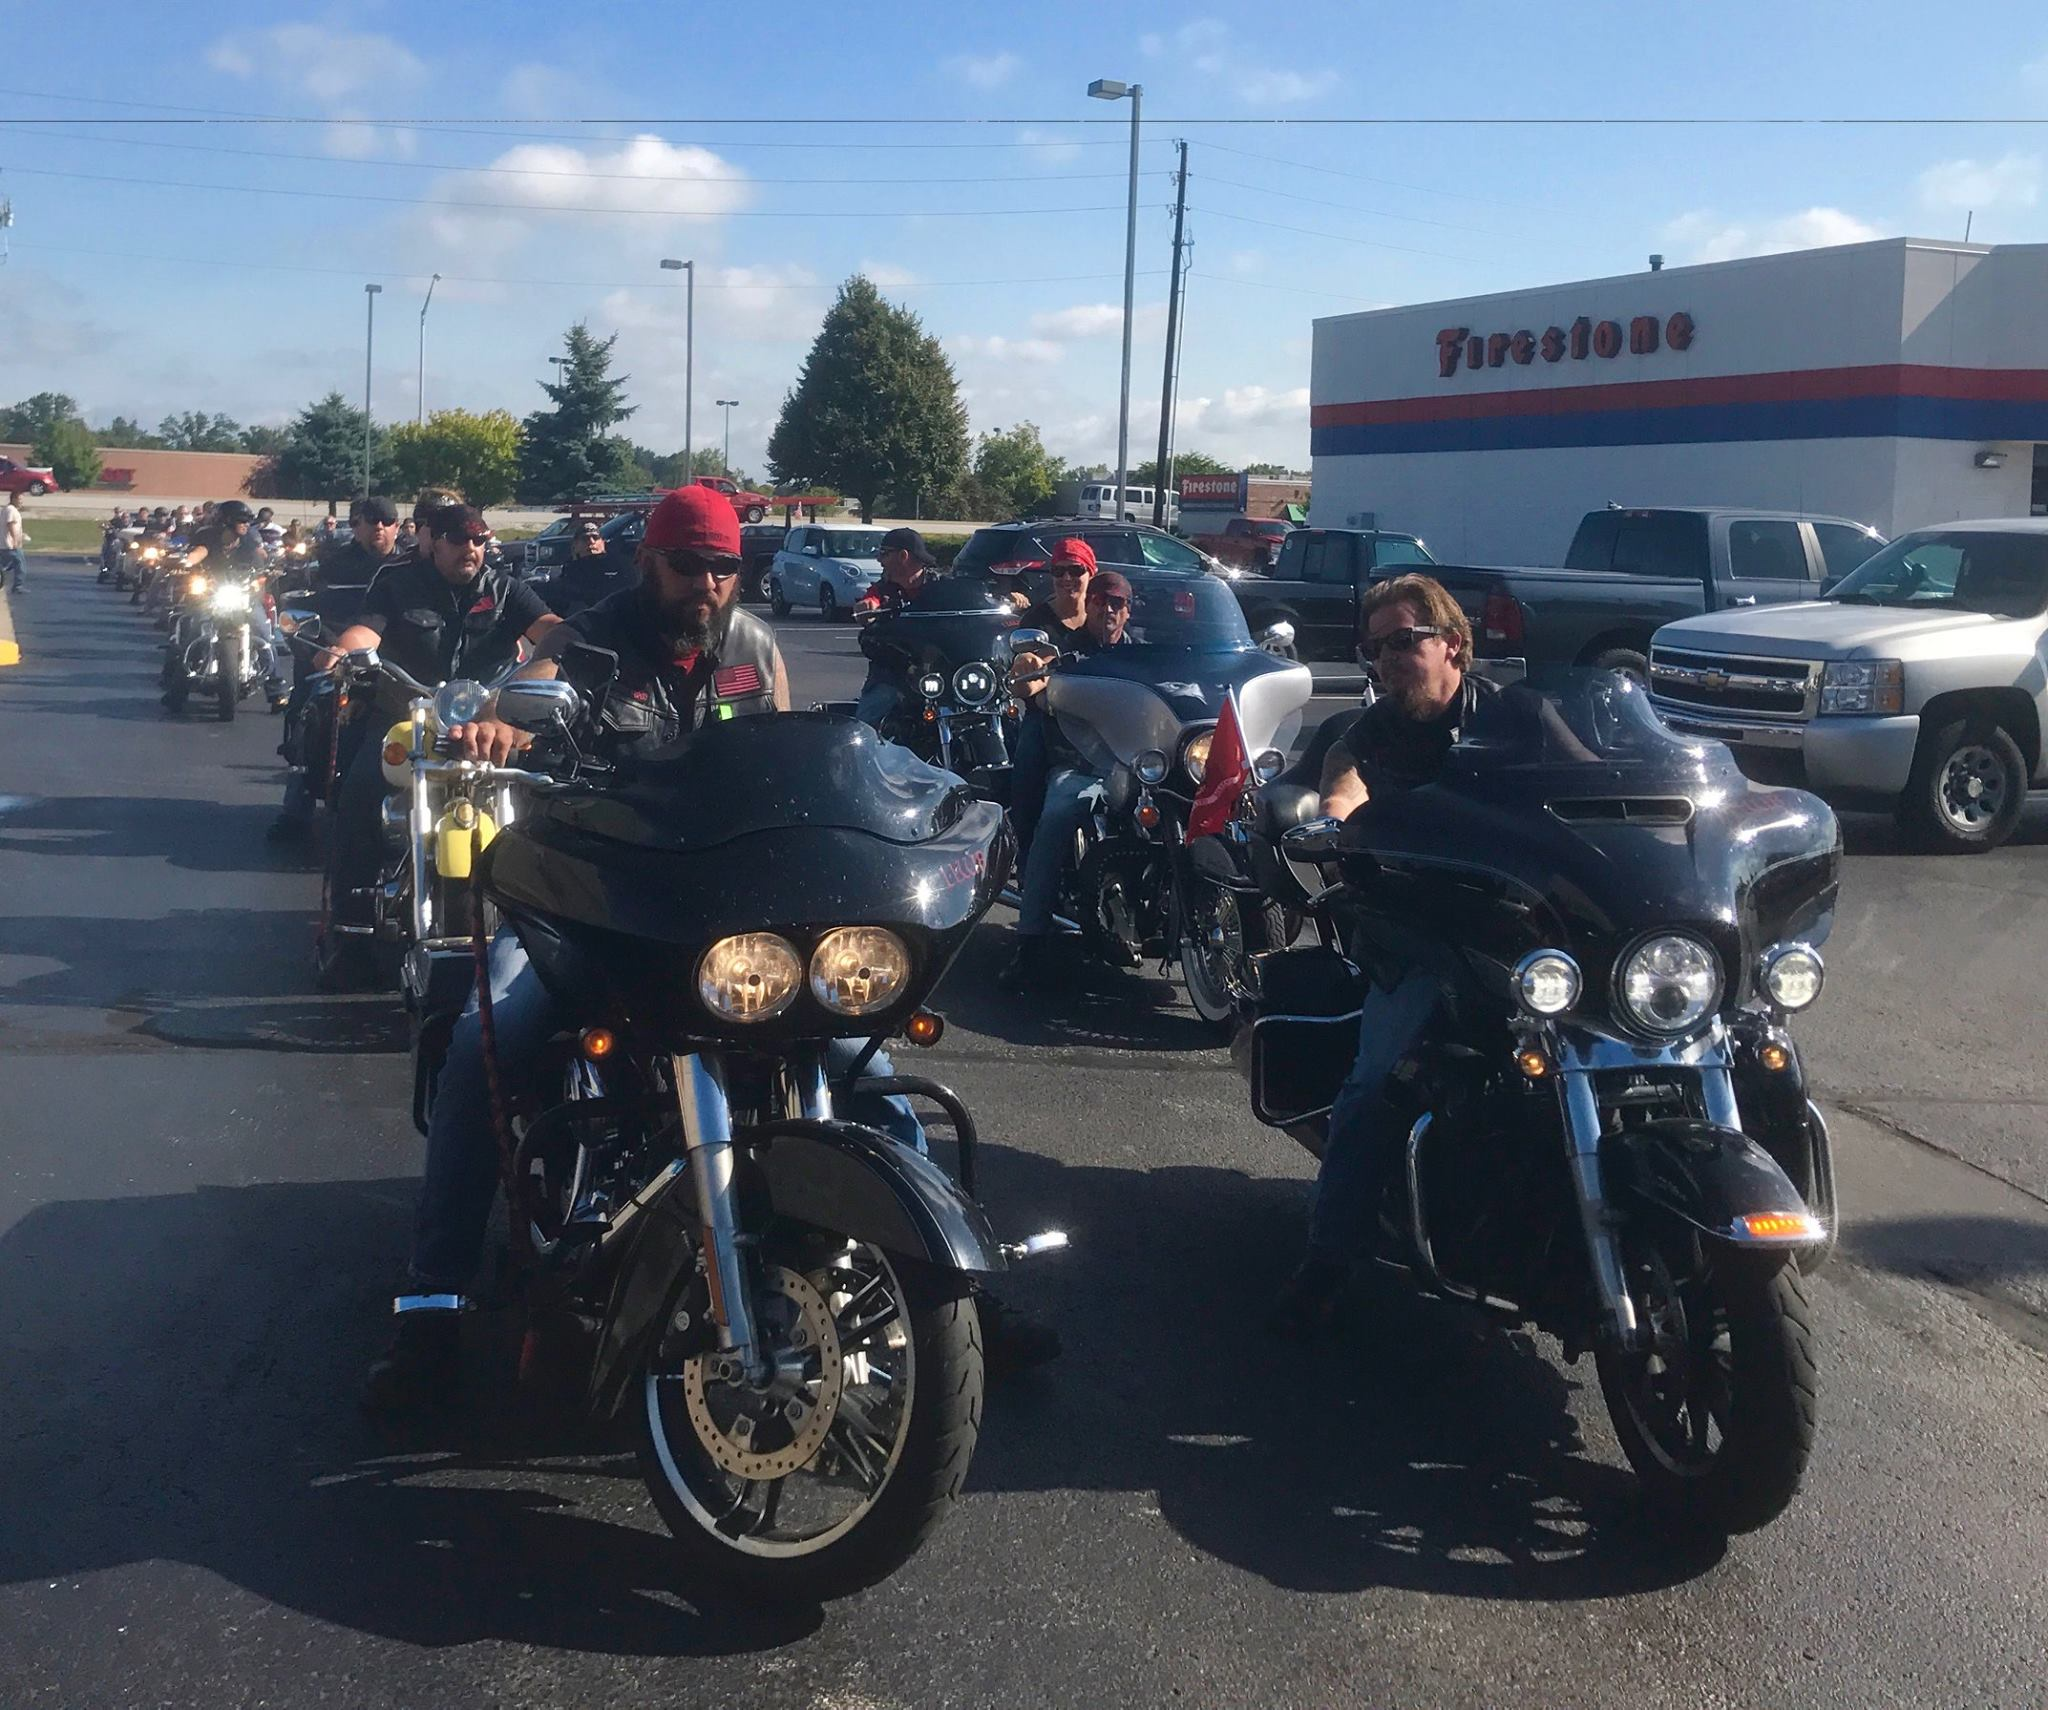 Indy Blue Star Mother's annual motorcycle rally to raise awareness for PTSD